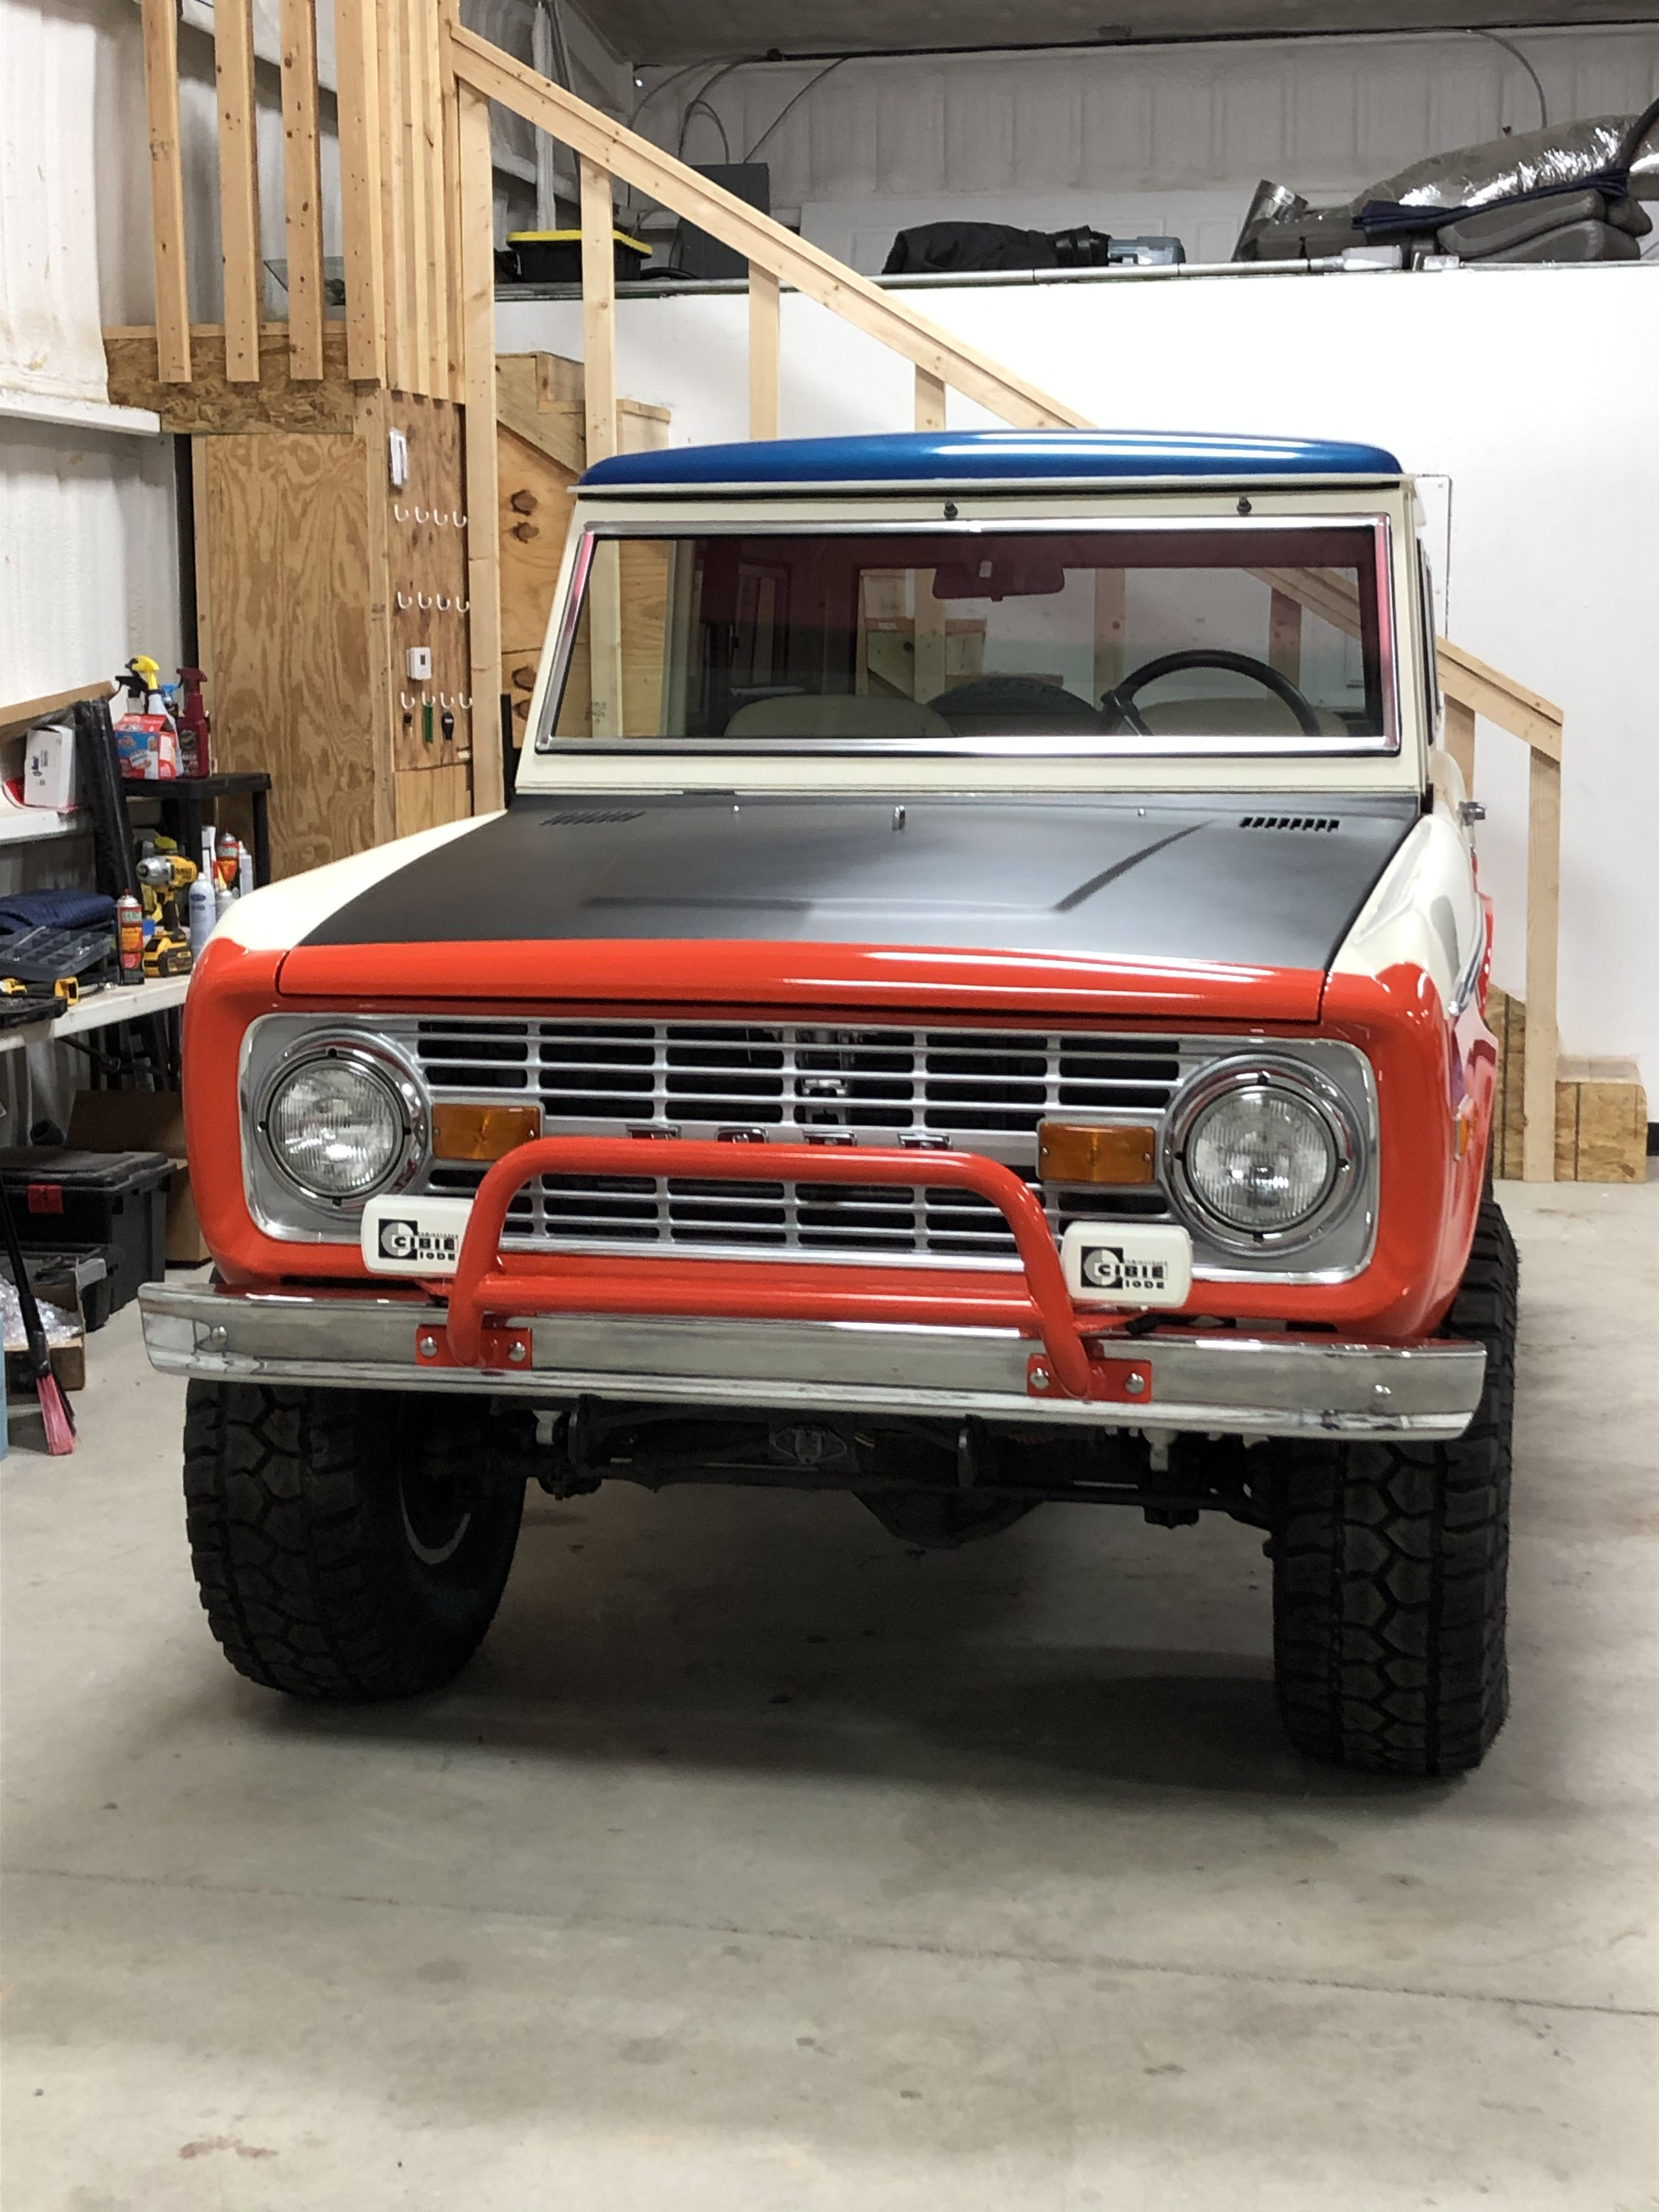 Pin by Leo Aureli on Ford bronco in 2020 Ford bronco